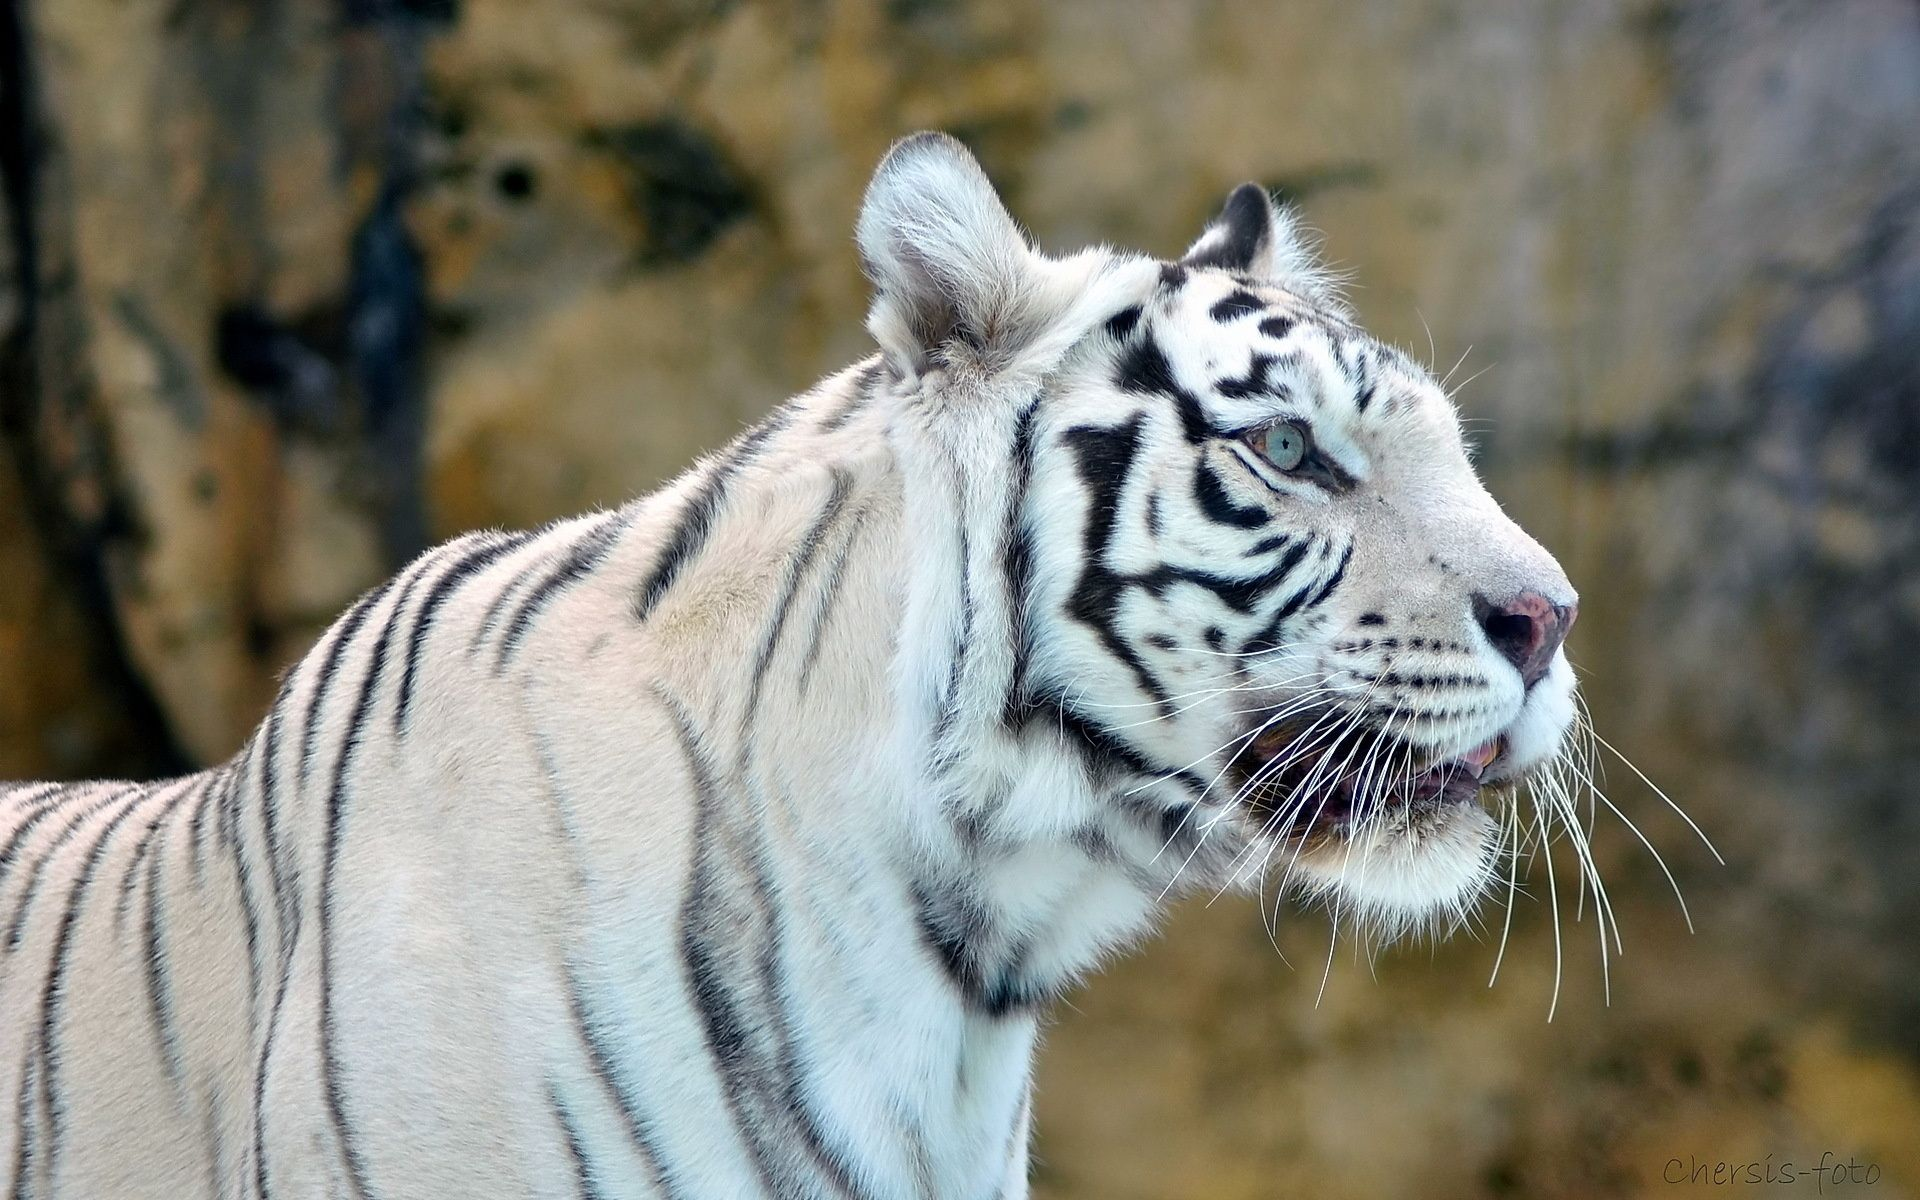 One White Tiger, Wallpaper and Background